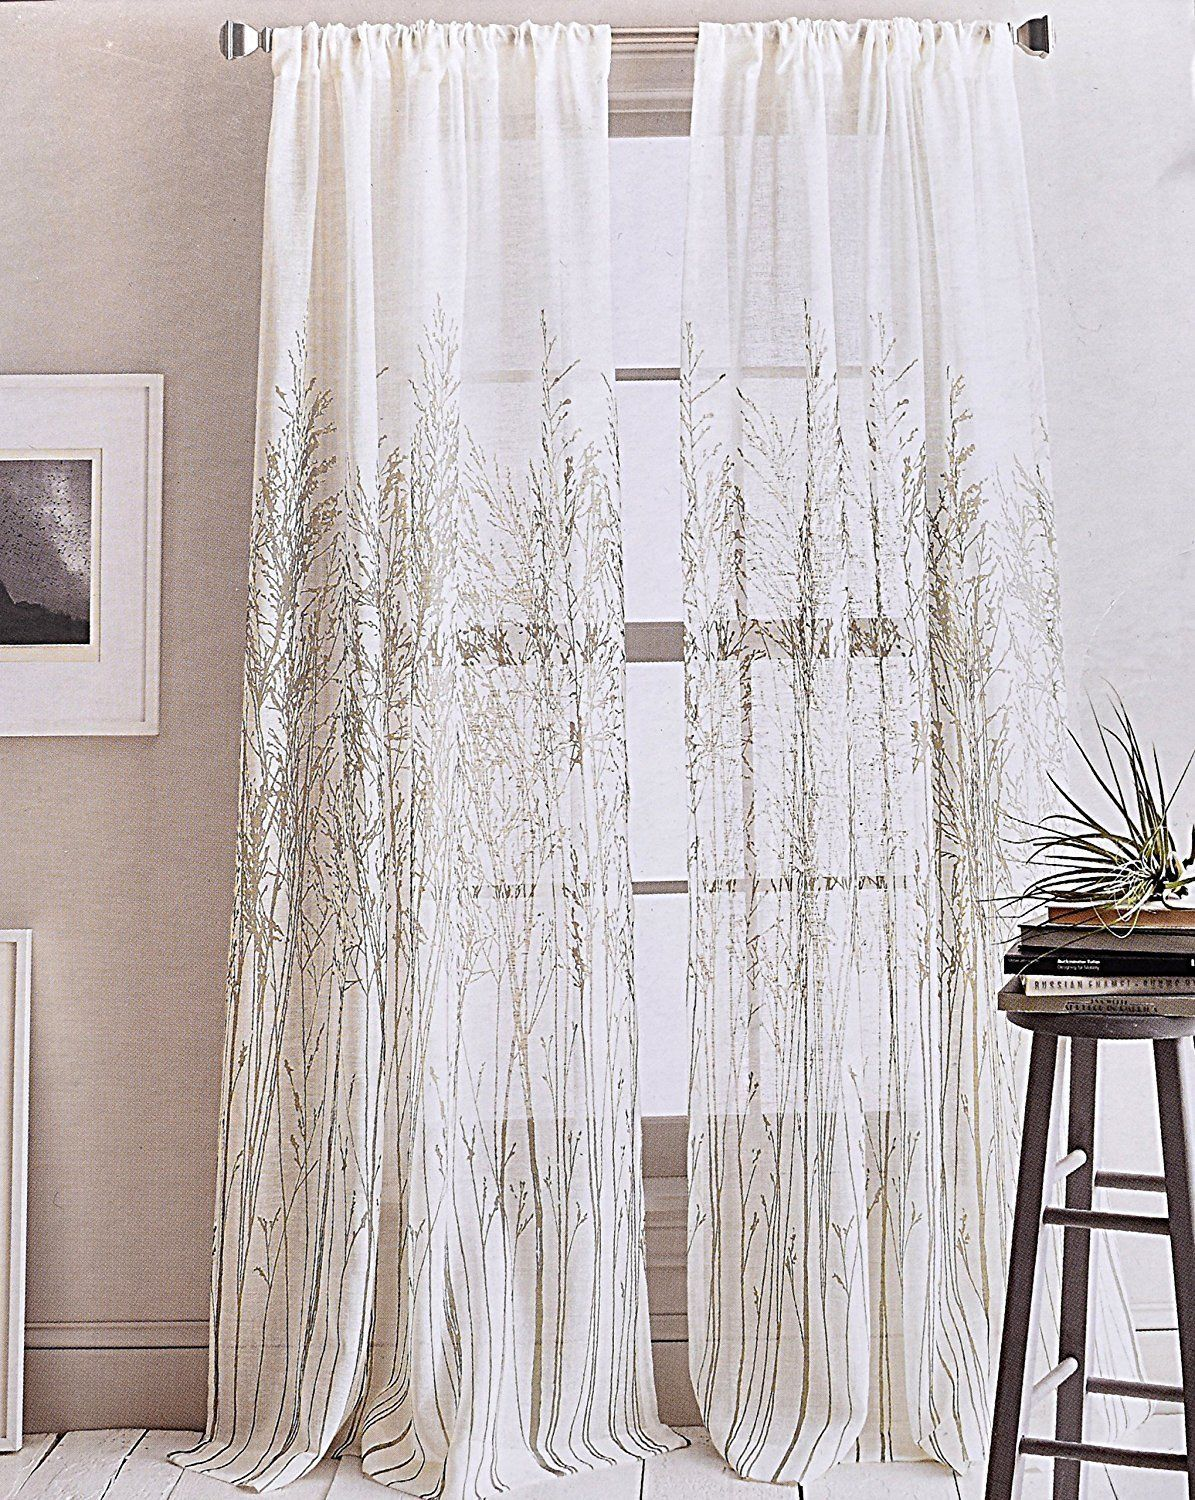 Dkny Floral Vines Branches 2pc Semi Sheer Pair Window Curtain Panels Drapery Tan Ebay Floral Curtains Floral Branch Curtains